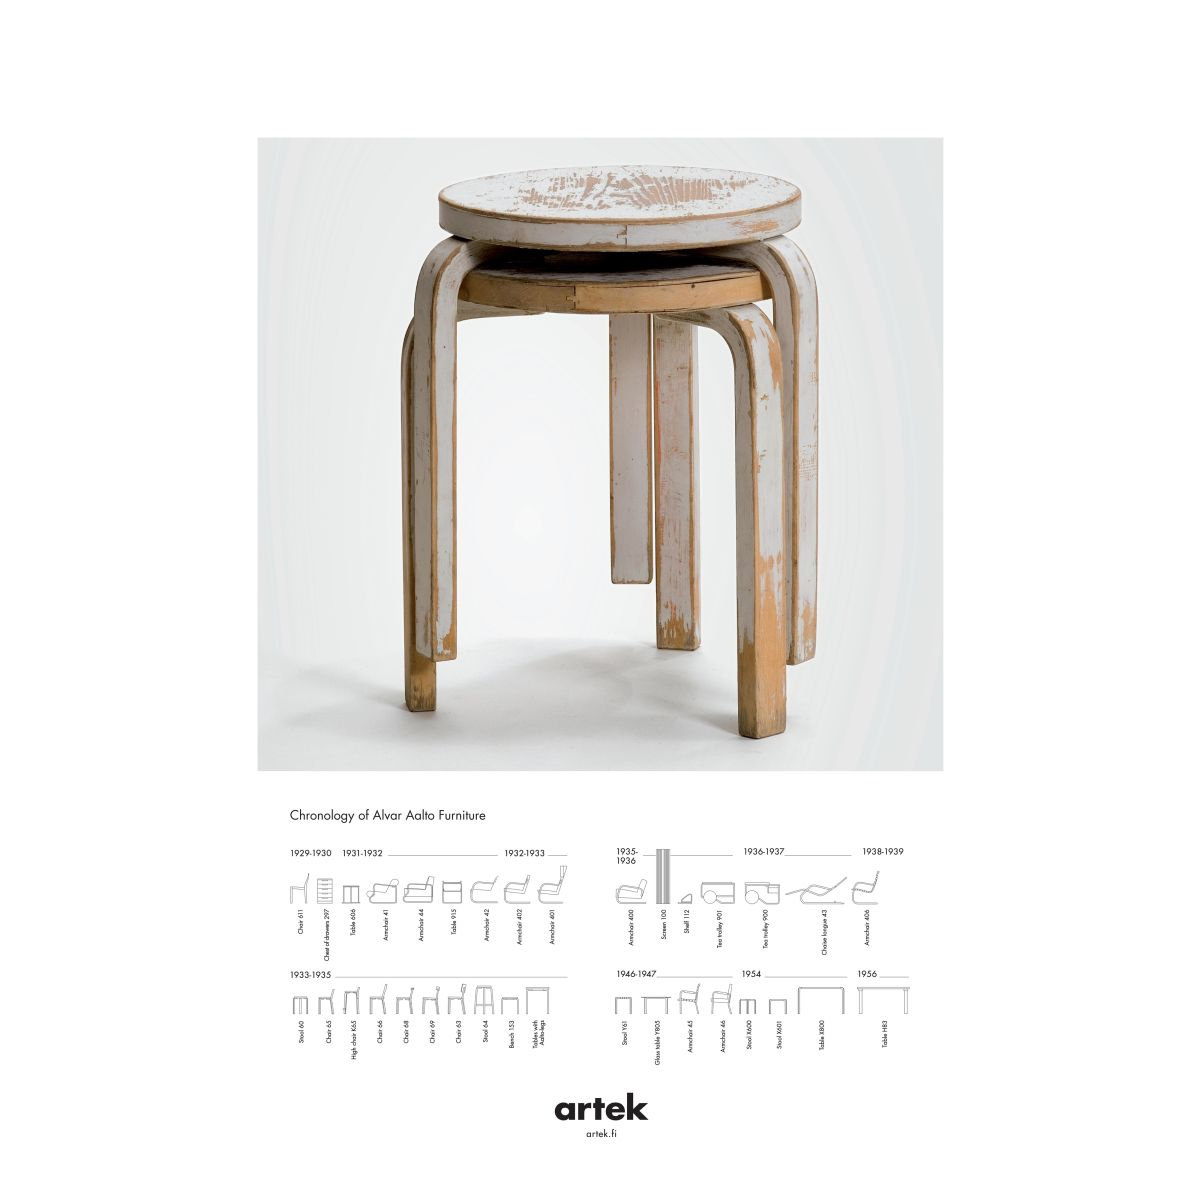 2Nd-Cycle-Stool-60-Poster-1842286_Web-1977554